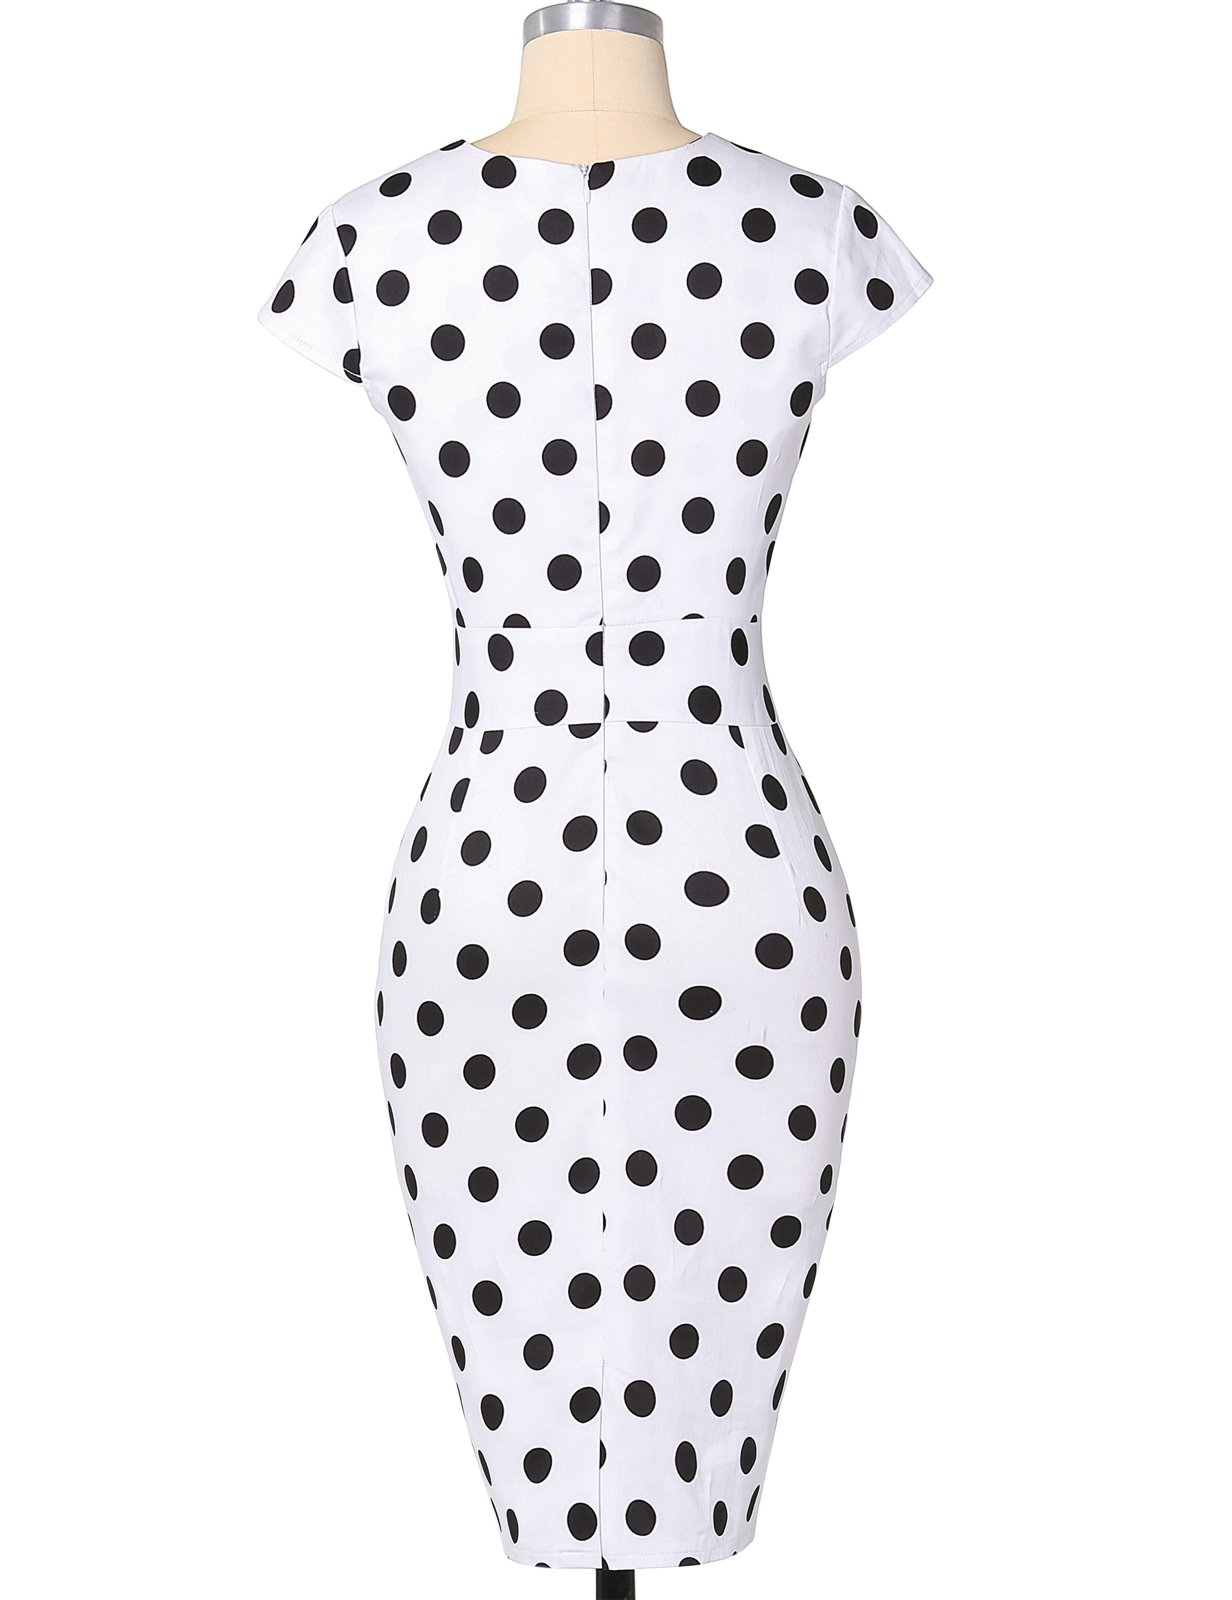 Polka Dots Vintage Ball Prom Dress Cap Sleeve White S CL7597-1 by Belle Poque Retro Dress (Image #2)